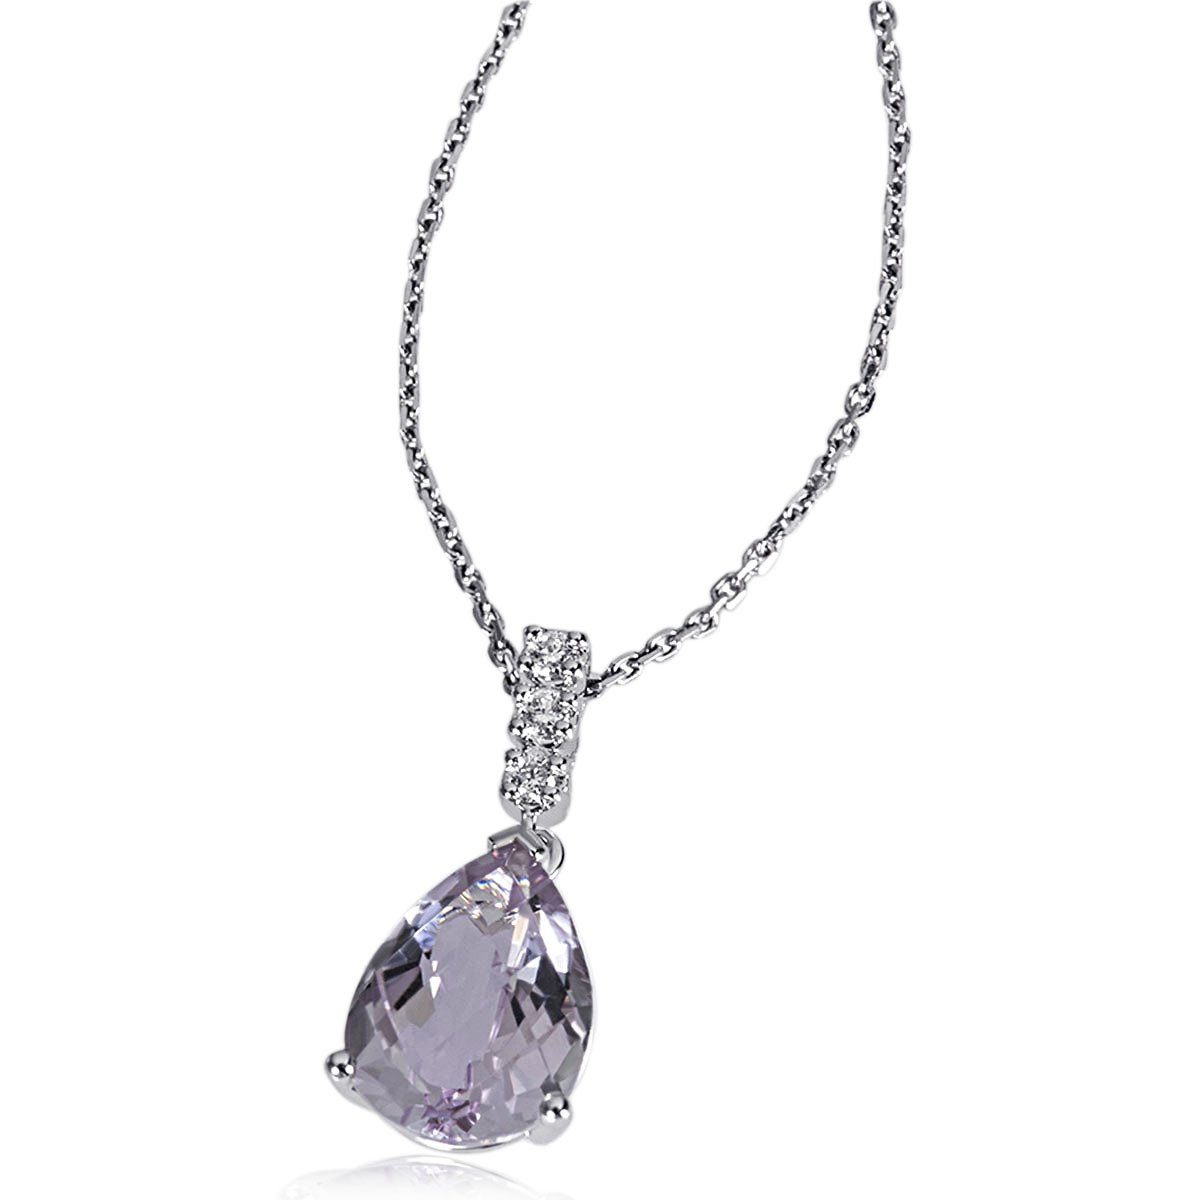 goldmaid Collier 375/- Weißgold 1 Amethyst 5 Brillanten 0,04 ct.